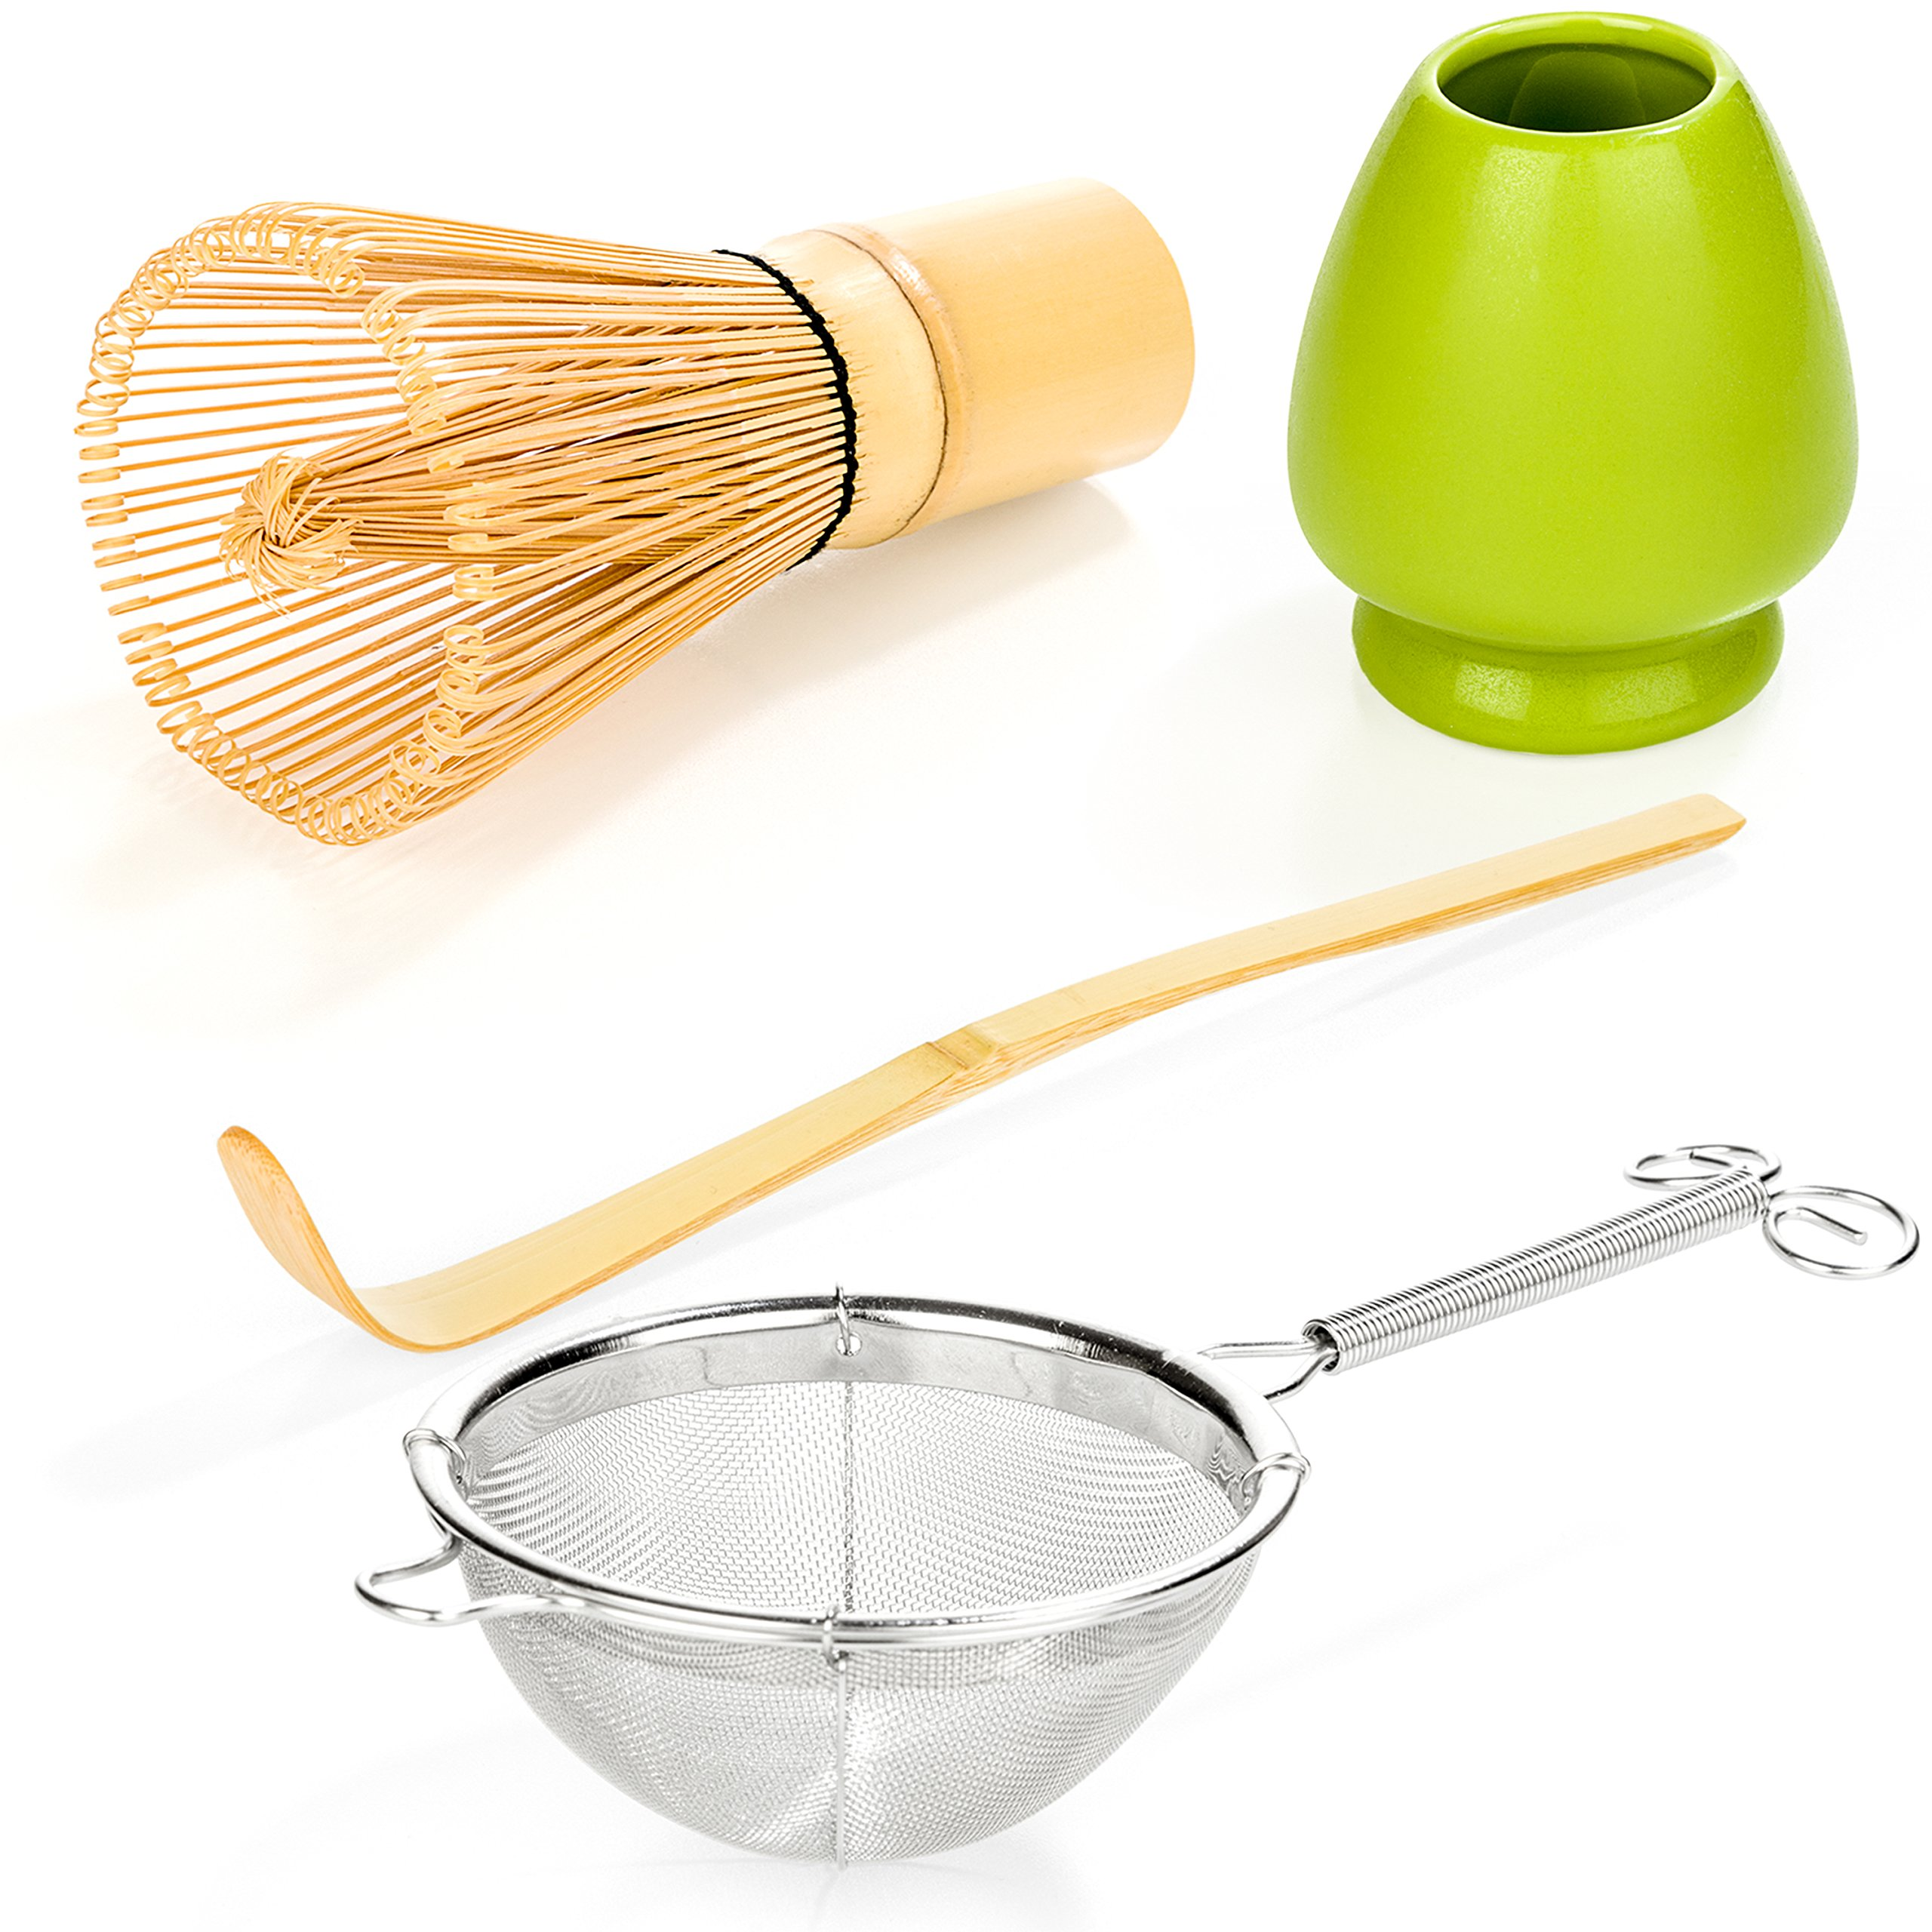 Tealyra - Matcha Whisk 100 Prong - Bamboo Scoop - Ceramic Whisk Holder - Stainless Steel Sifter - Ceremony Matcha Start Up Gift Set - Japanese Matcha Accessories - 4 Piece Kit by Tealyra